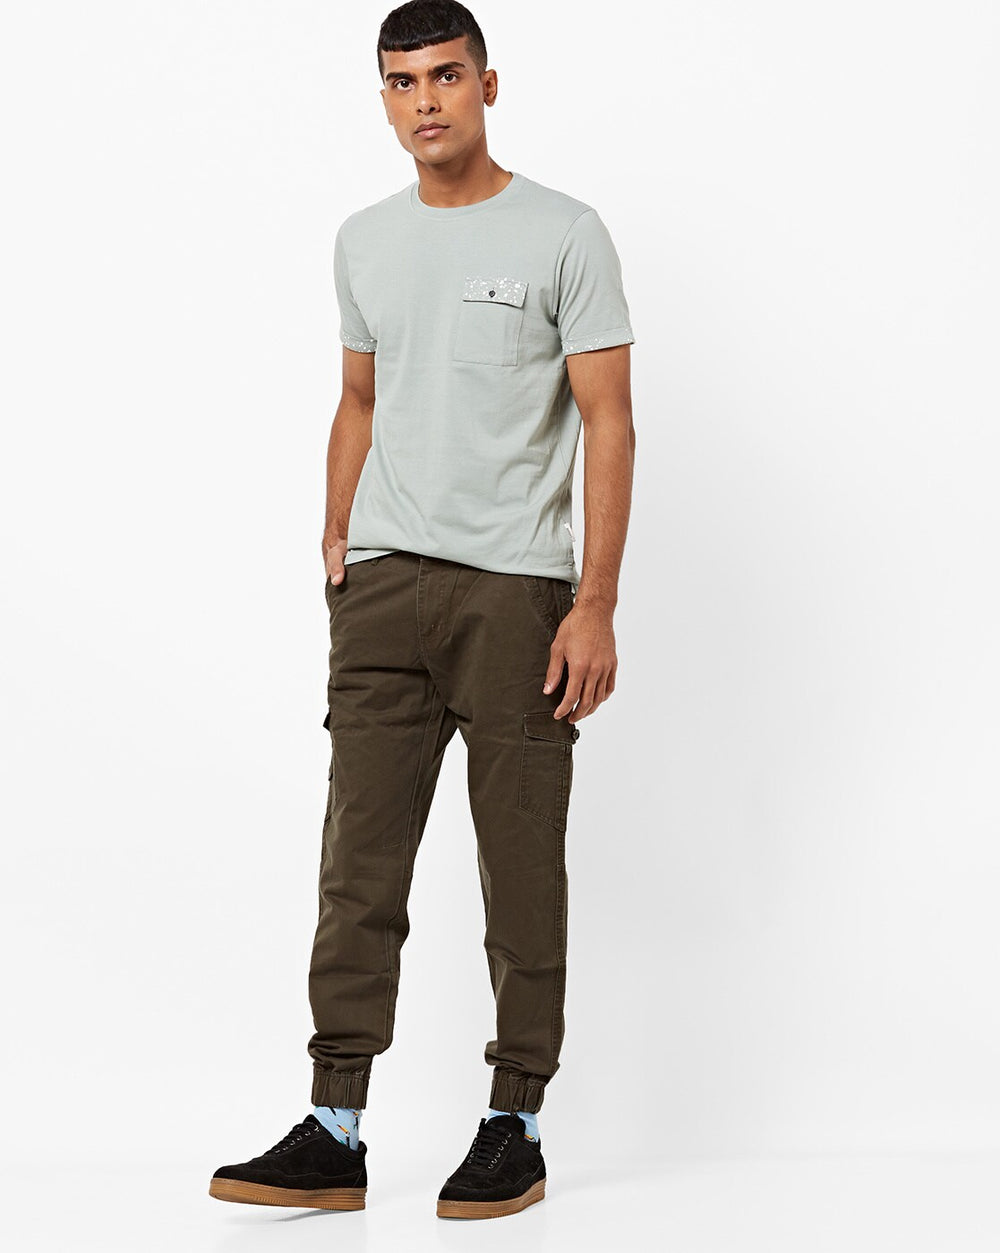 Disrupt Olive 100% Cotton Regular Fit Joggers For Men's